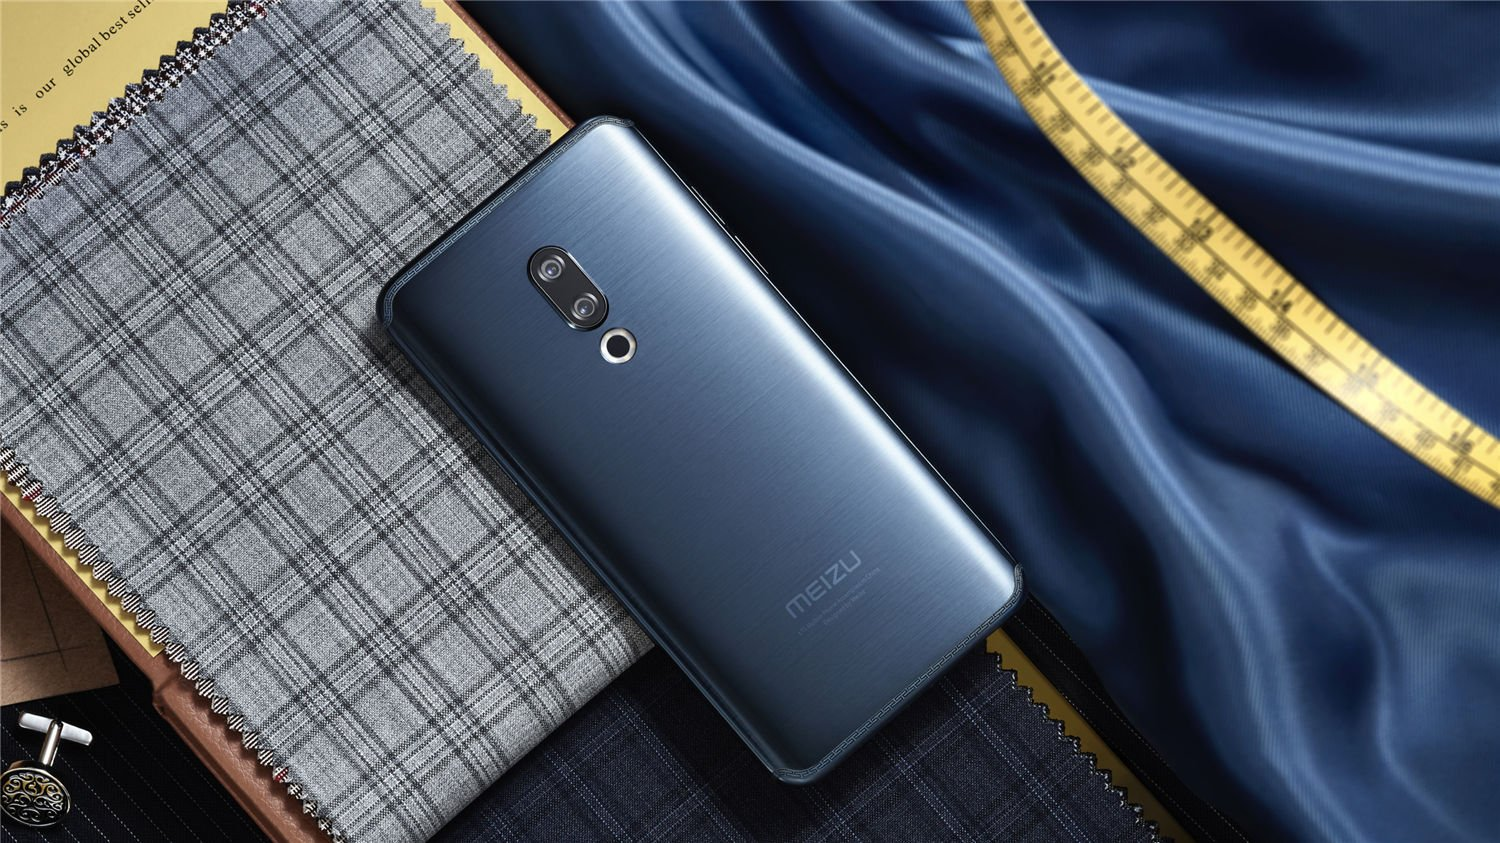 Meizu 15, 15 Plus & 15 Lite are now official - Here's all you need to know 5